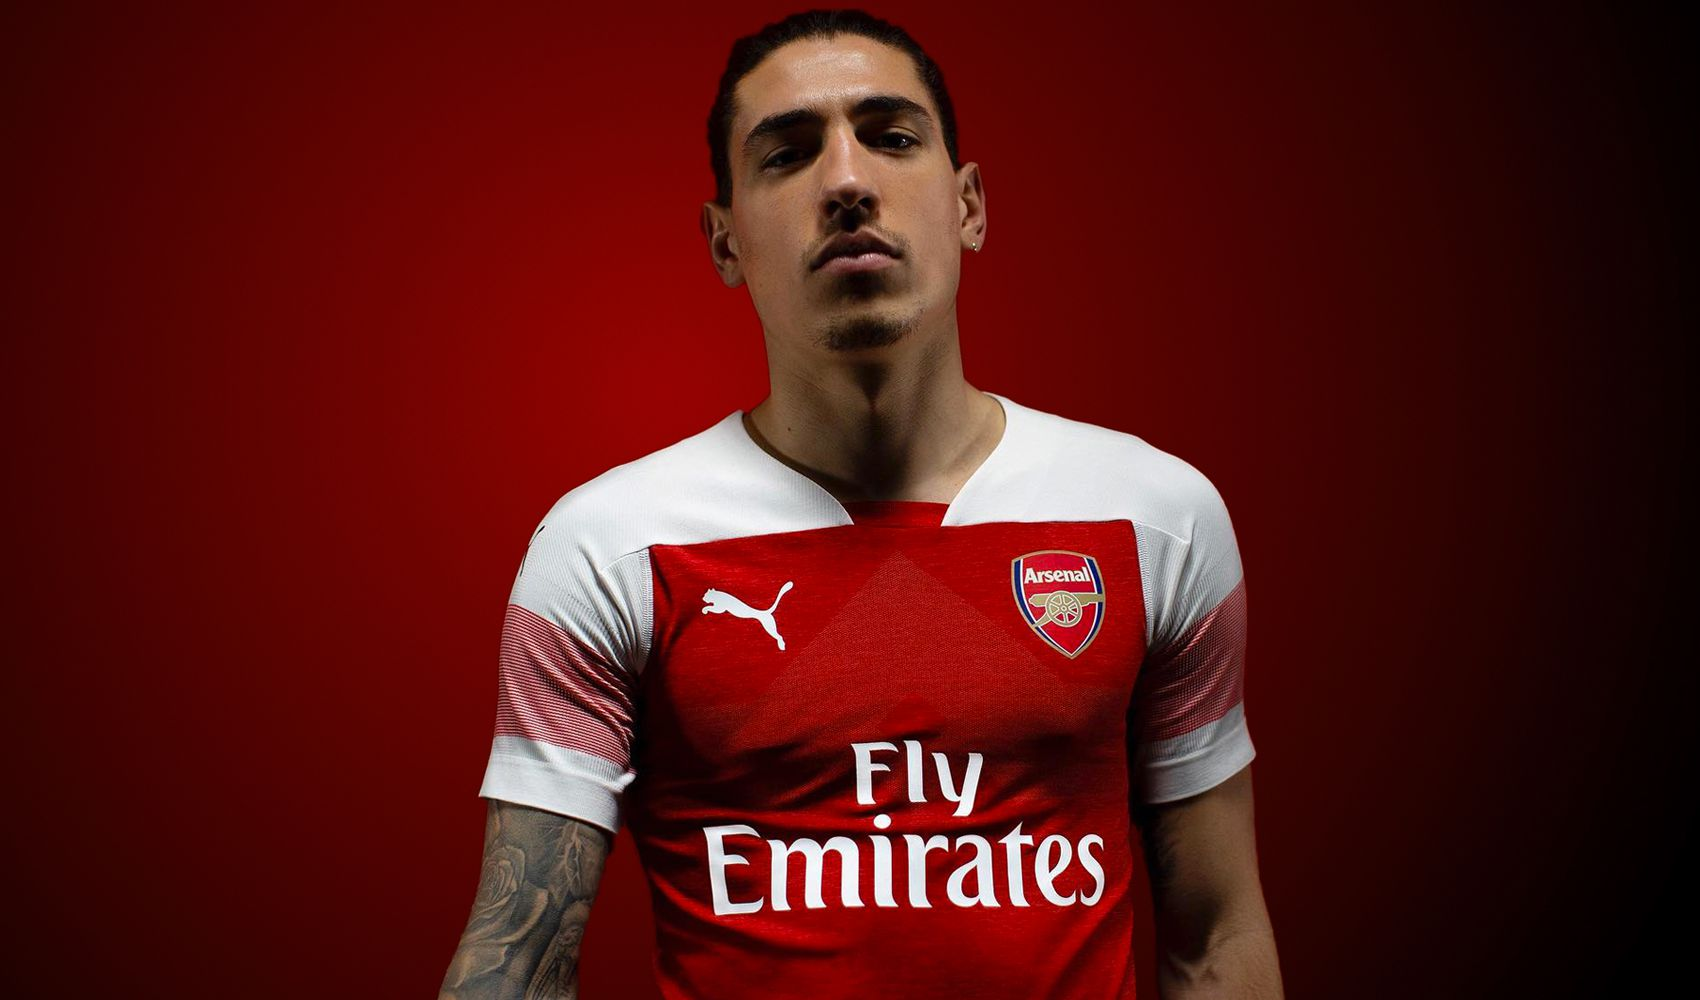 Arsenal thuisshirt 2018-2019